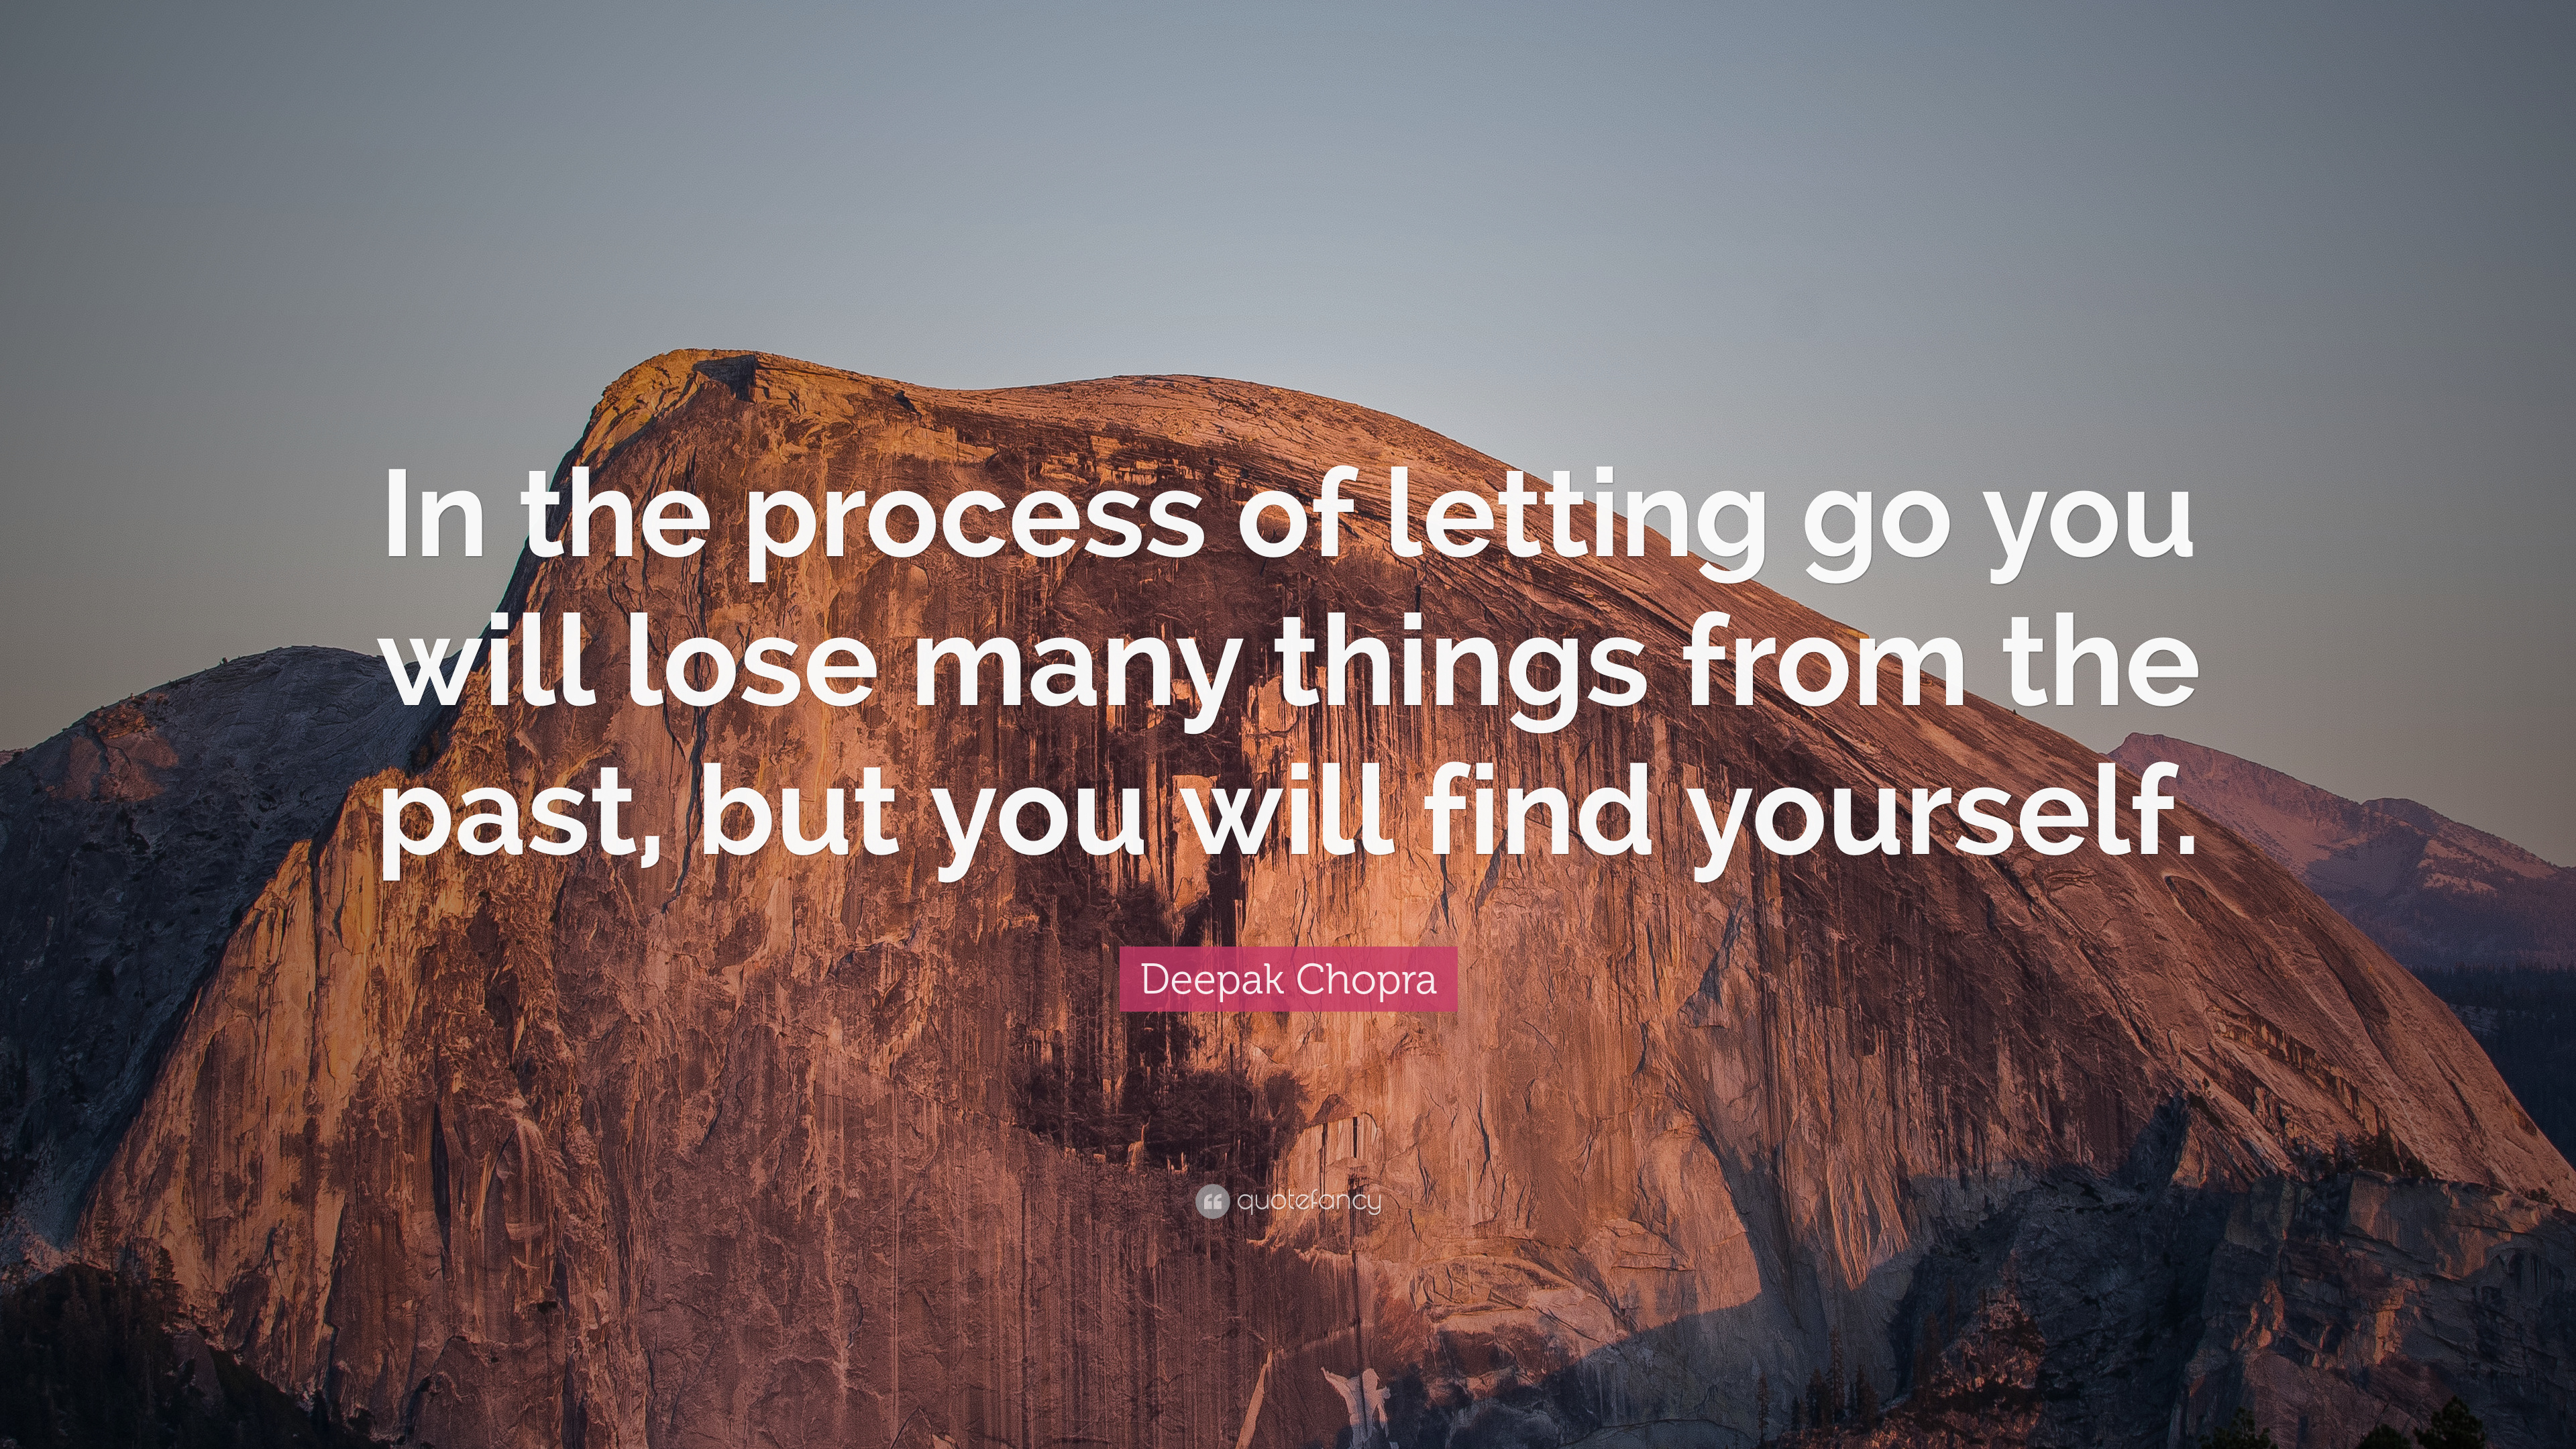 Deepak Chopra Quote: U201cIn The Process Of Letting Go You Will Lose Many Things